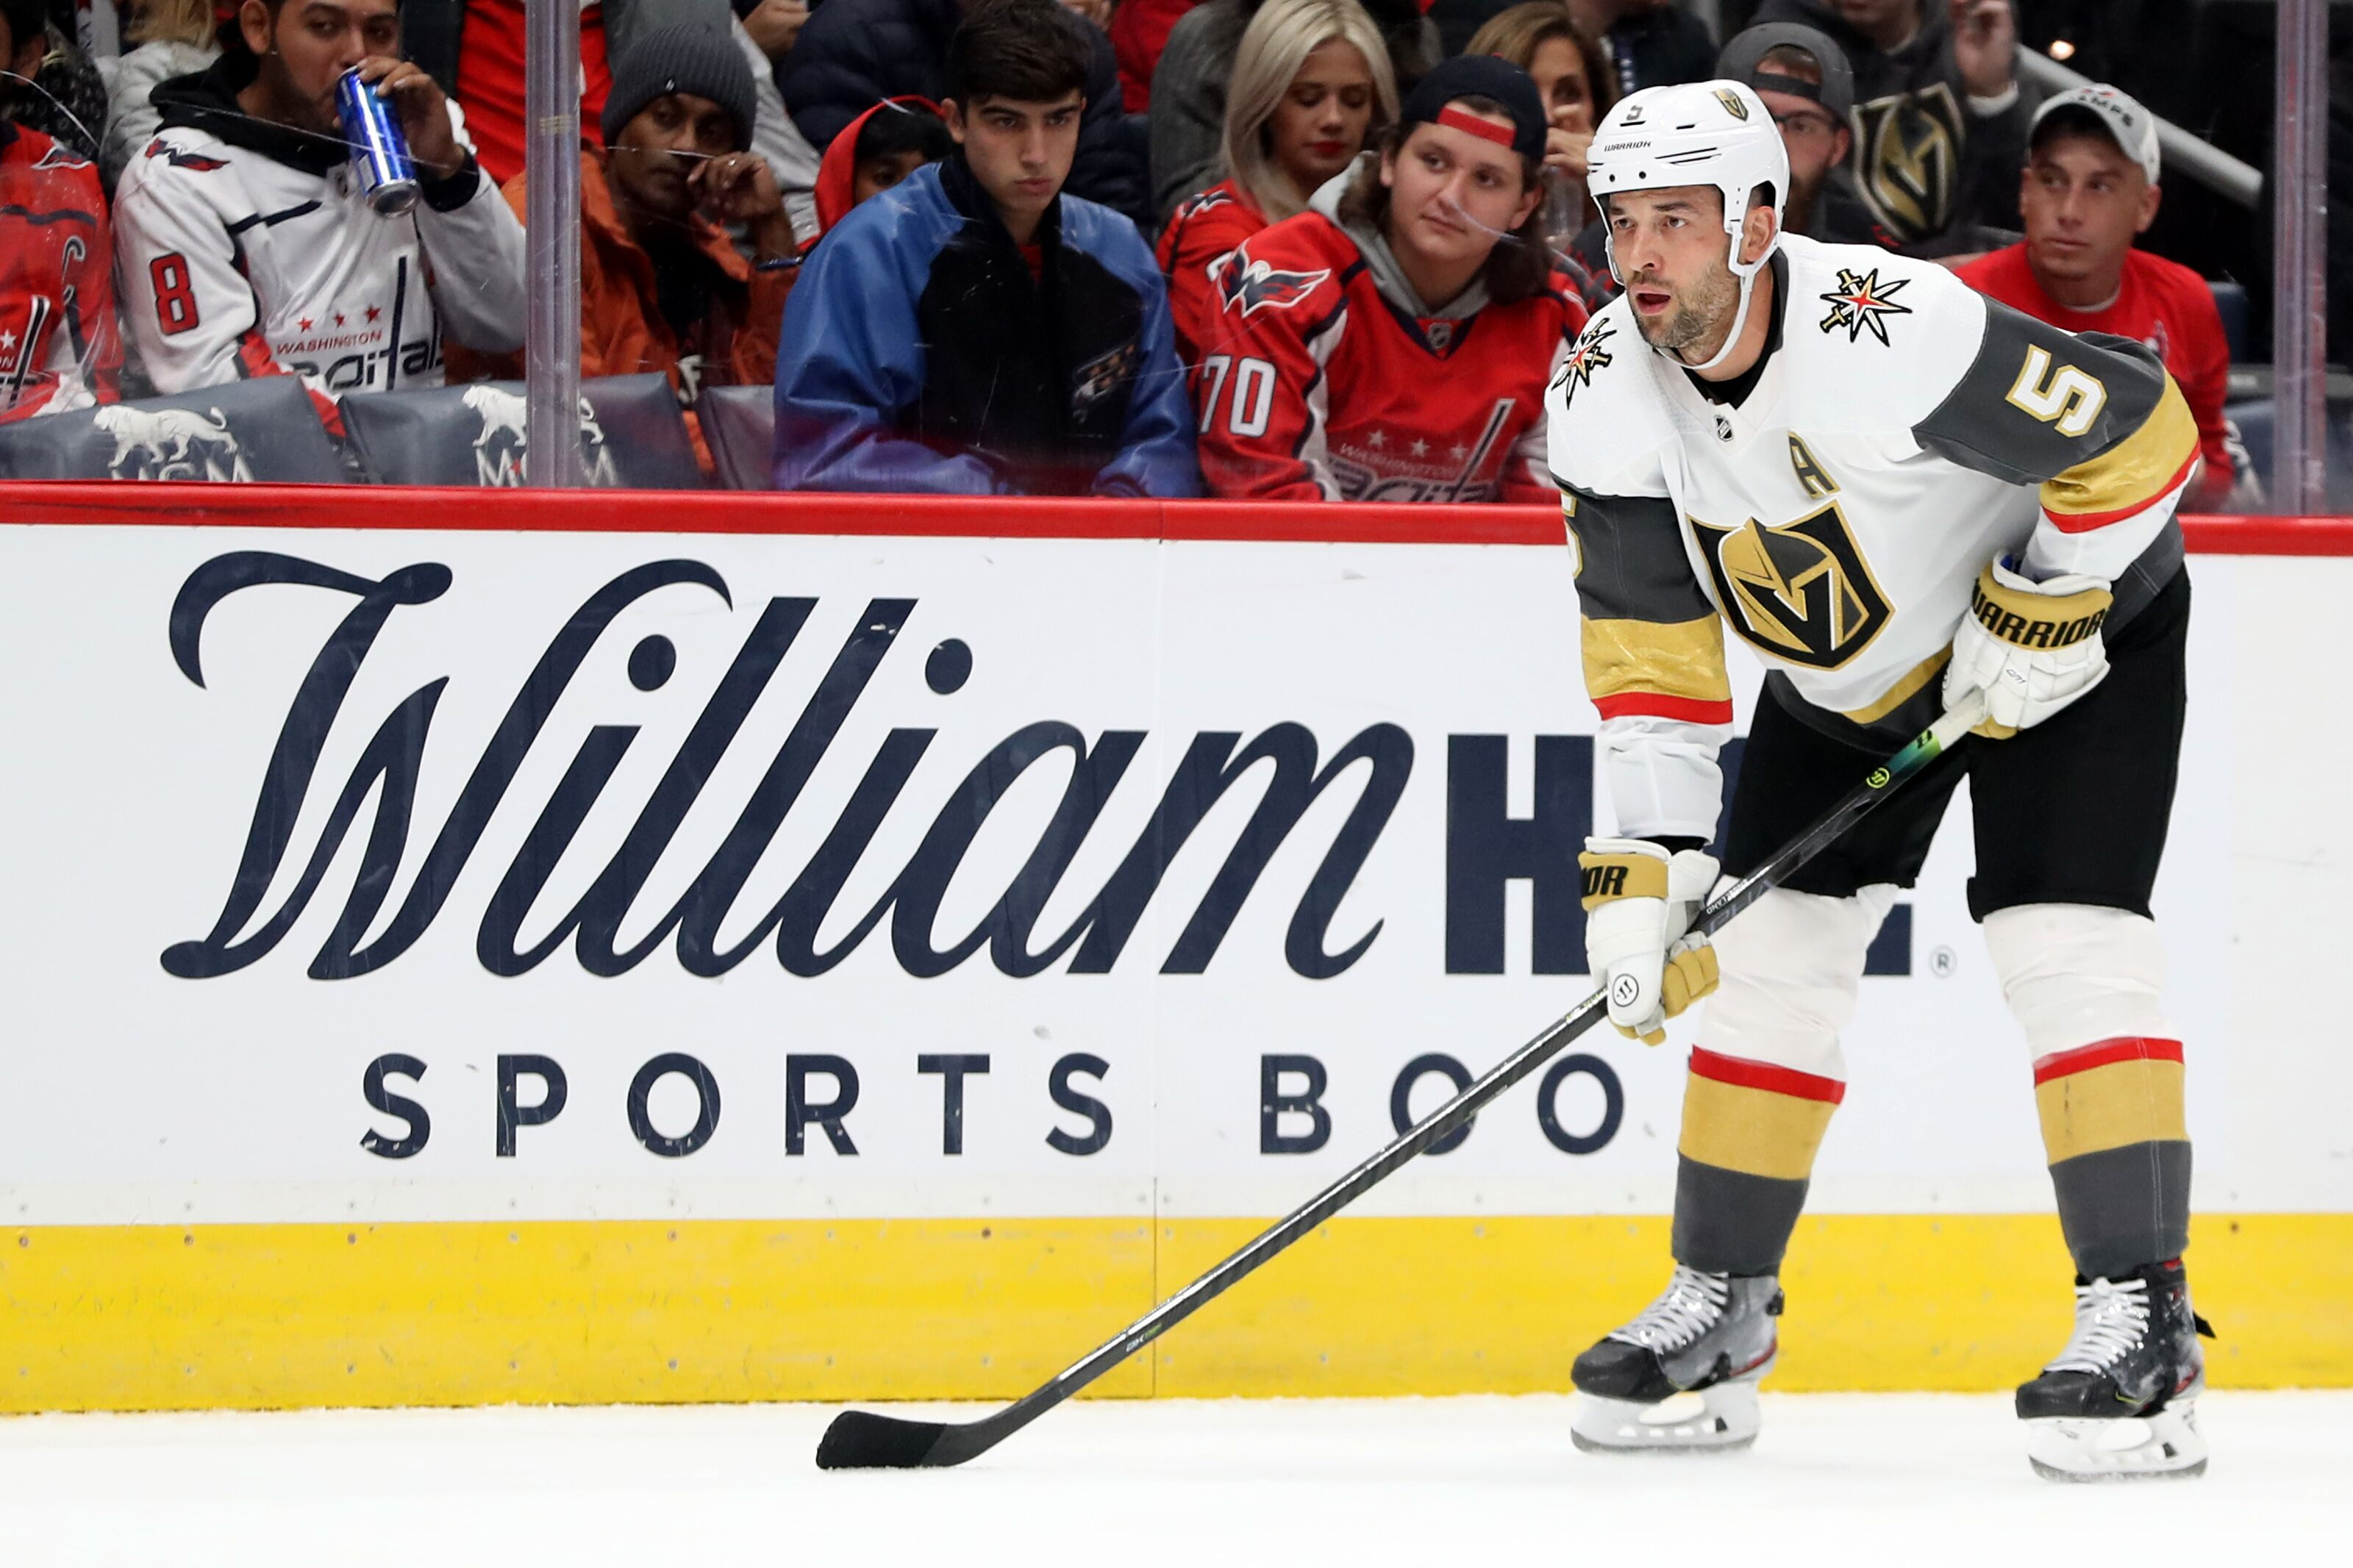 Vegas Golden Knights: This year should be Engelland's last